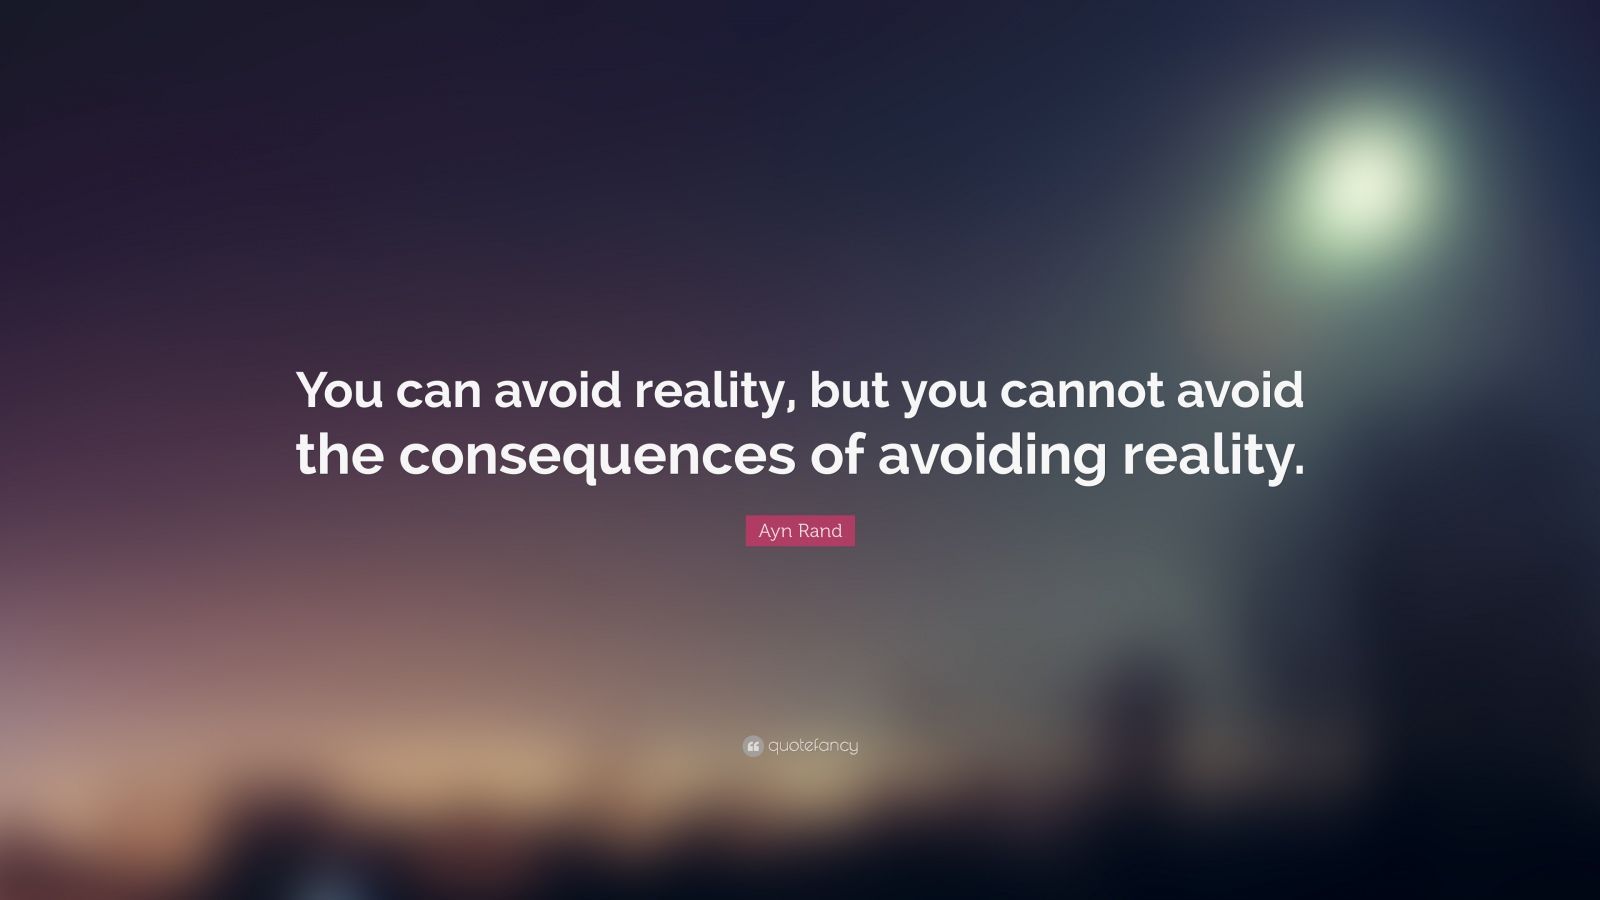 Wallpapers Philosophy Quotes Ayn Rand Quote You Can Avoid Reality But You Cannot